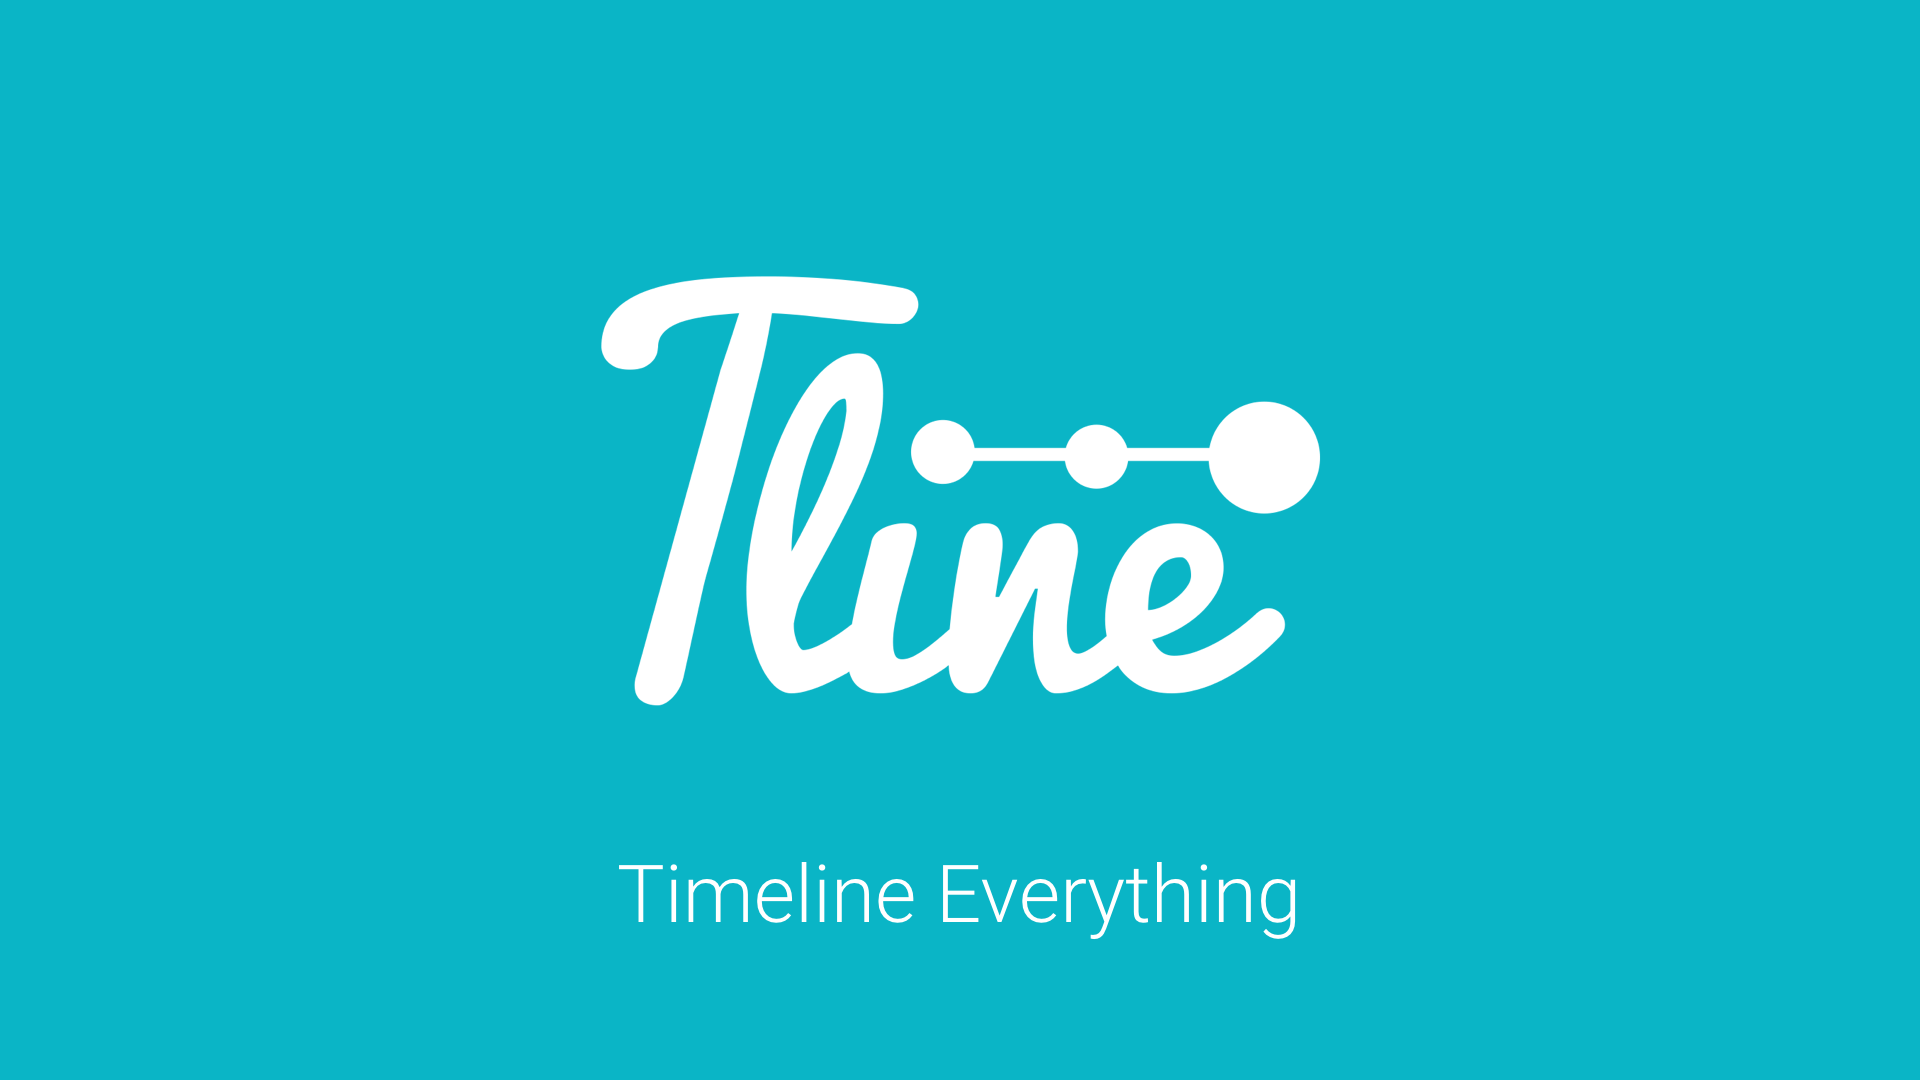 Tline Interactive timelines of well-known companies | Digitales